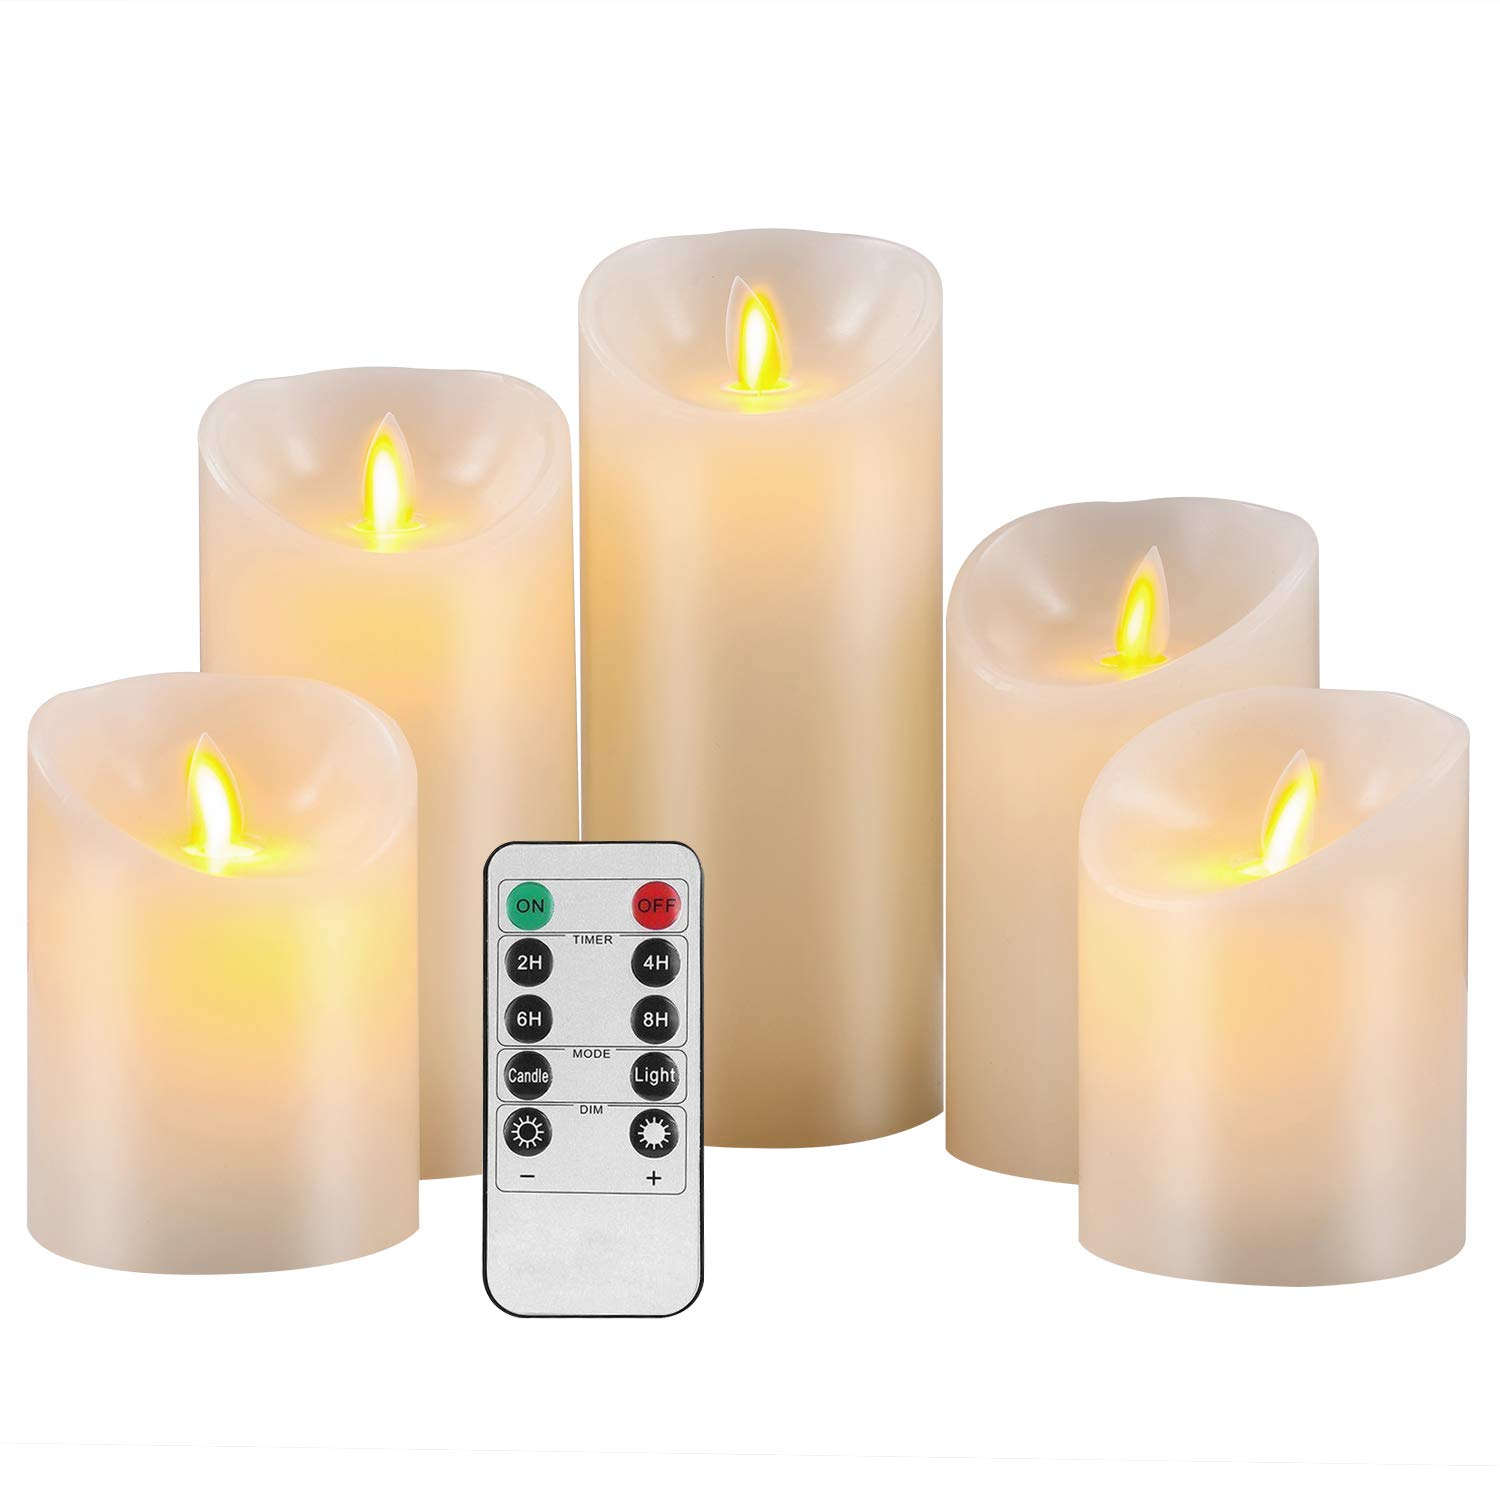 Pandaing Flameless Candles Set of 5 (D 3'' x H 4'' 4'' 5'' 6'' 7'') Battery Operated LED Pillar Real Wax Moving Flame Flickering Electric Candle Gift Set with Remote Control Cycling 24 Hours Timer